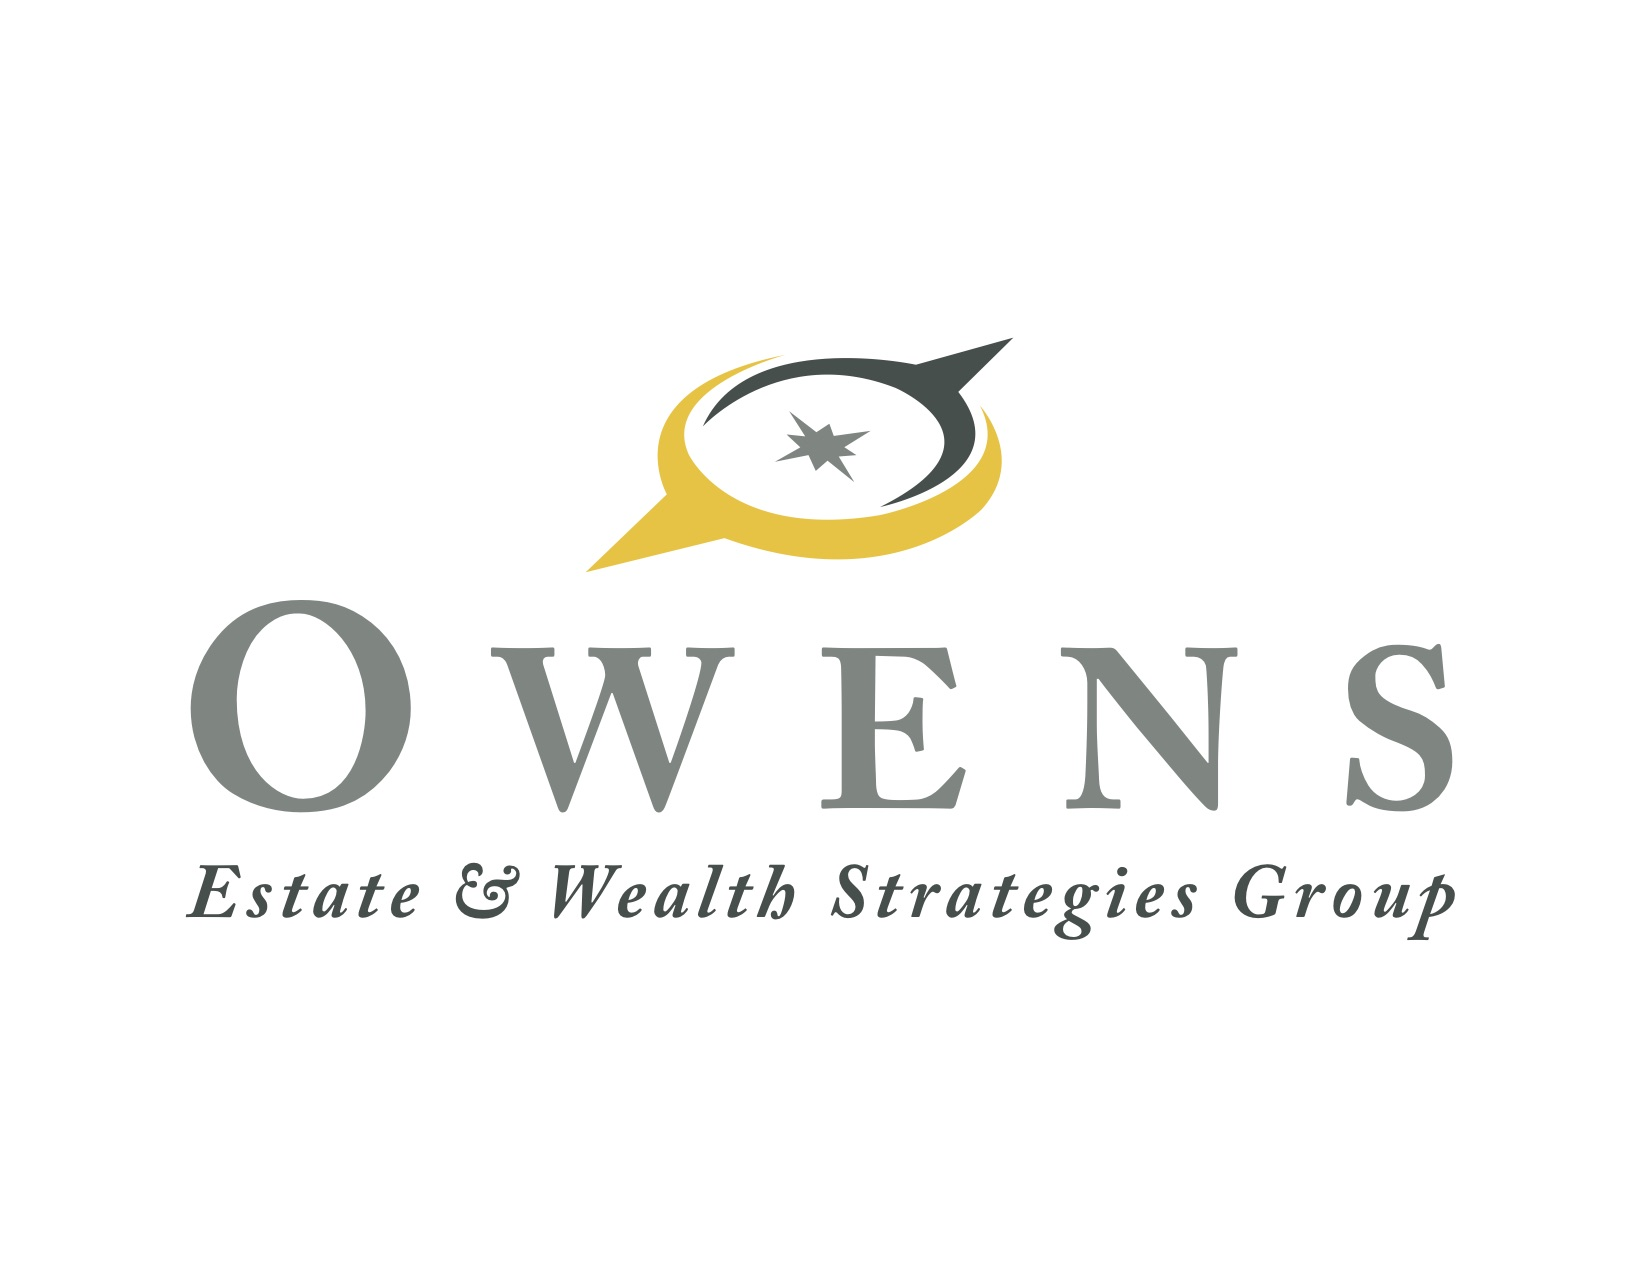 Owens Estate and Wealth Strategies Group